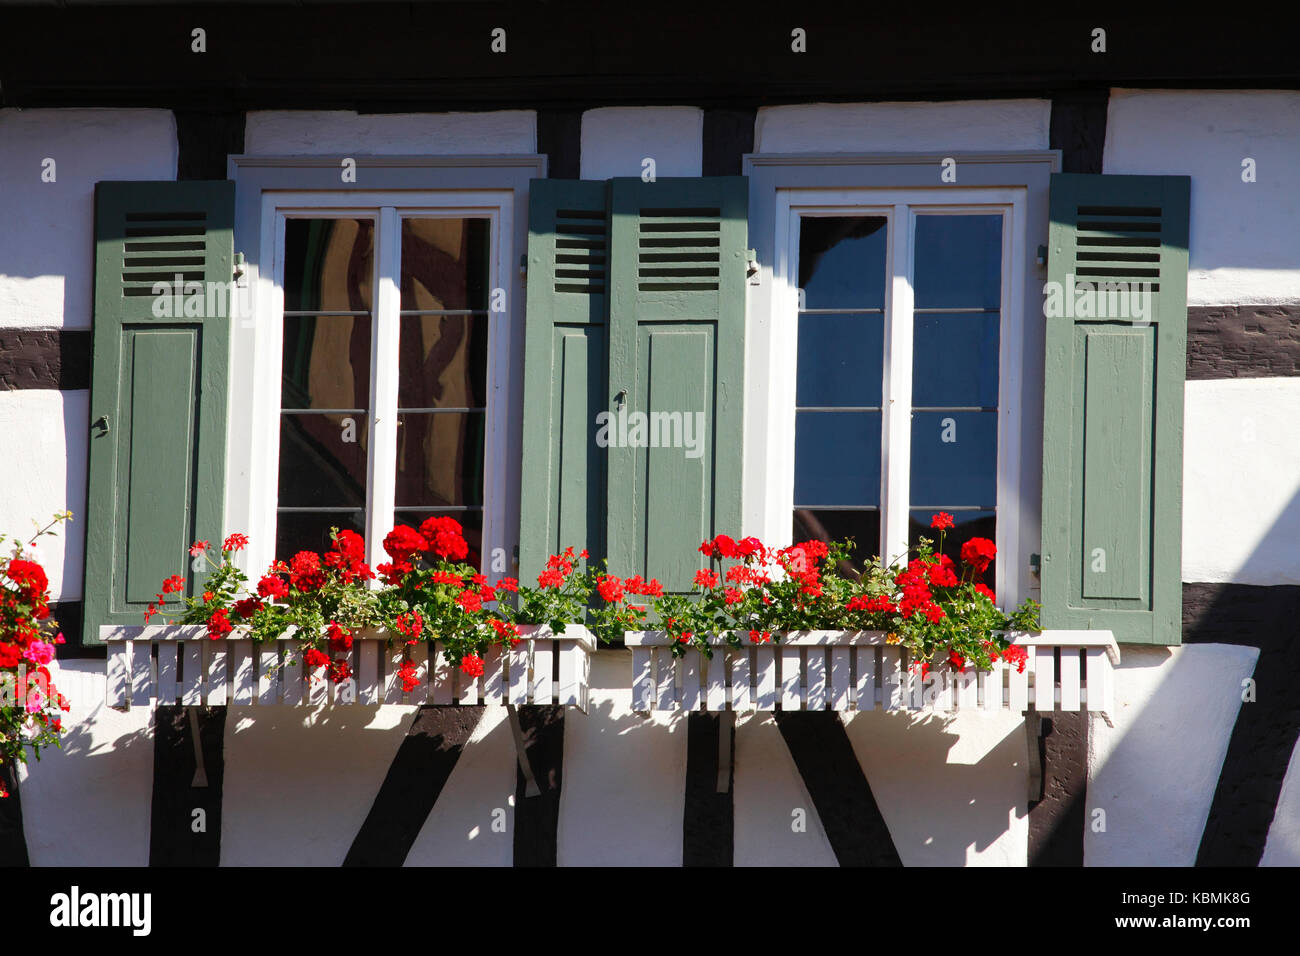 Windows With Wooden Window Boxes And Flower Boxes In Old Town Stock Photo Alamy